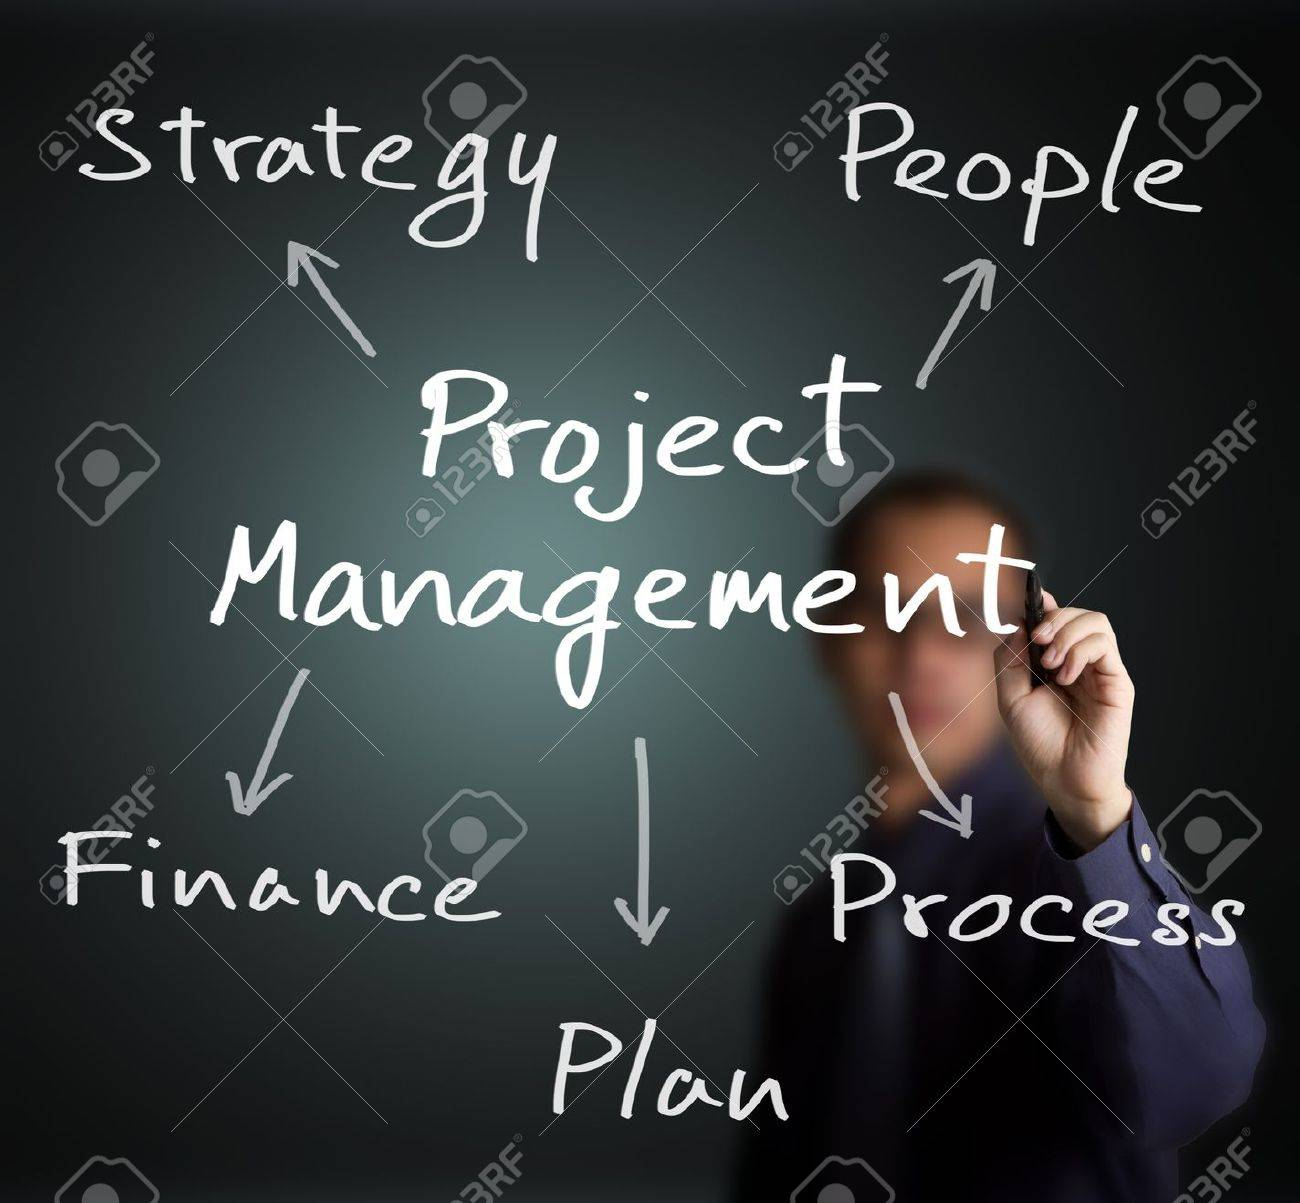 business man writing project management concept strategy - people - finance - plan - process Stock Photo - 14637450